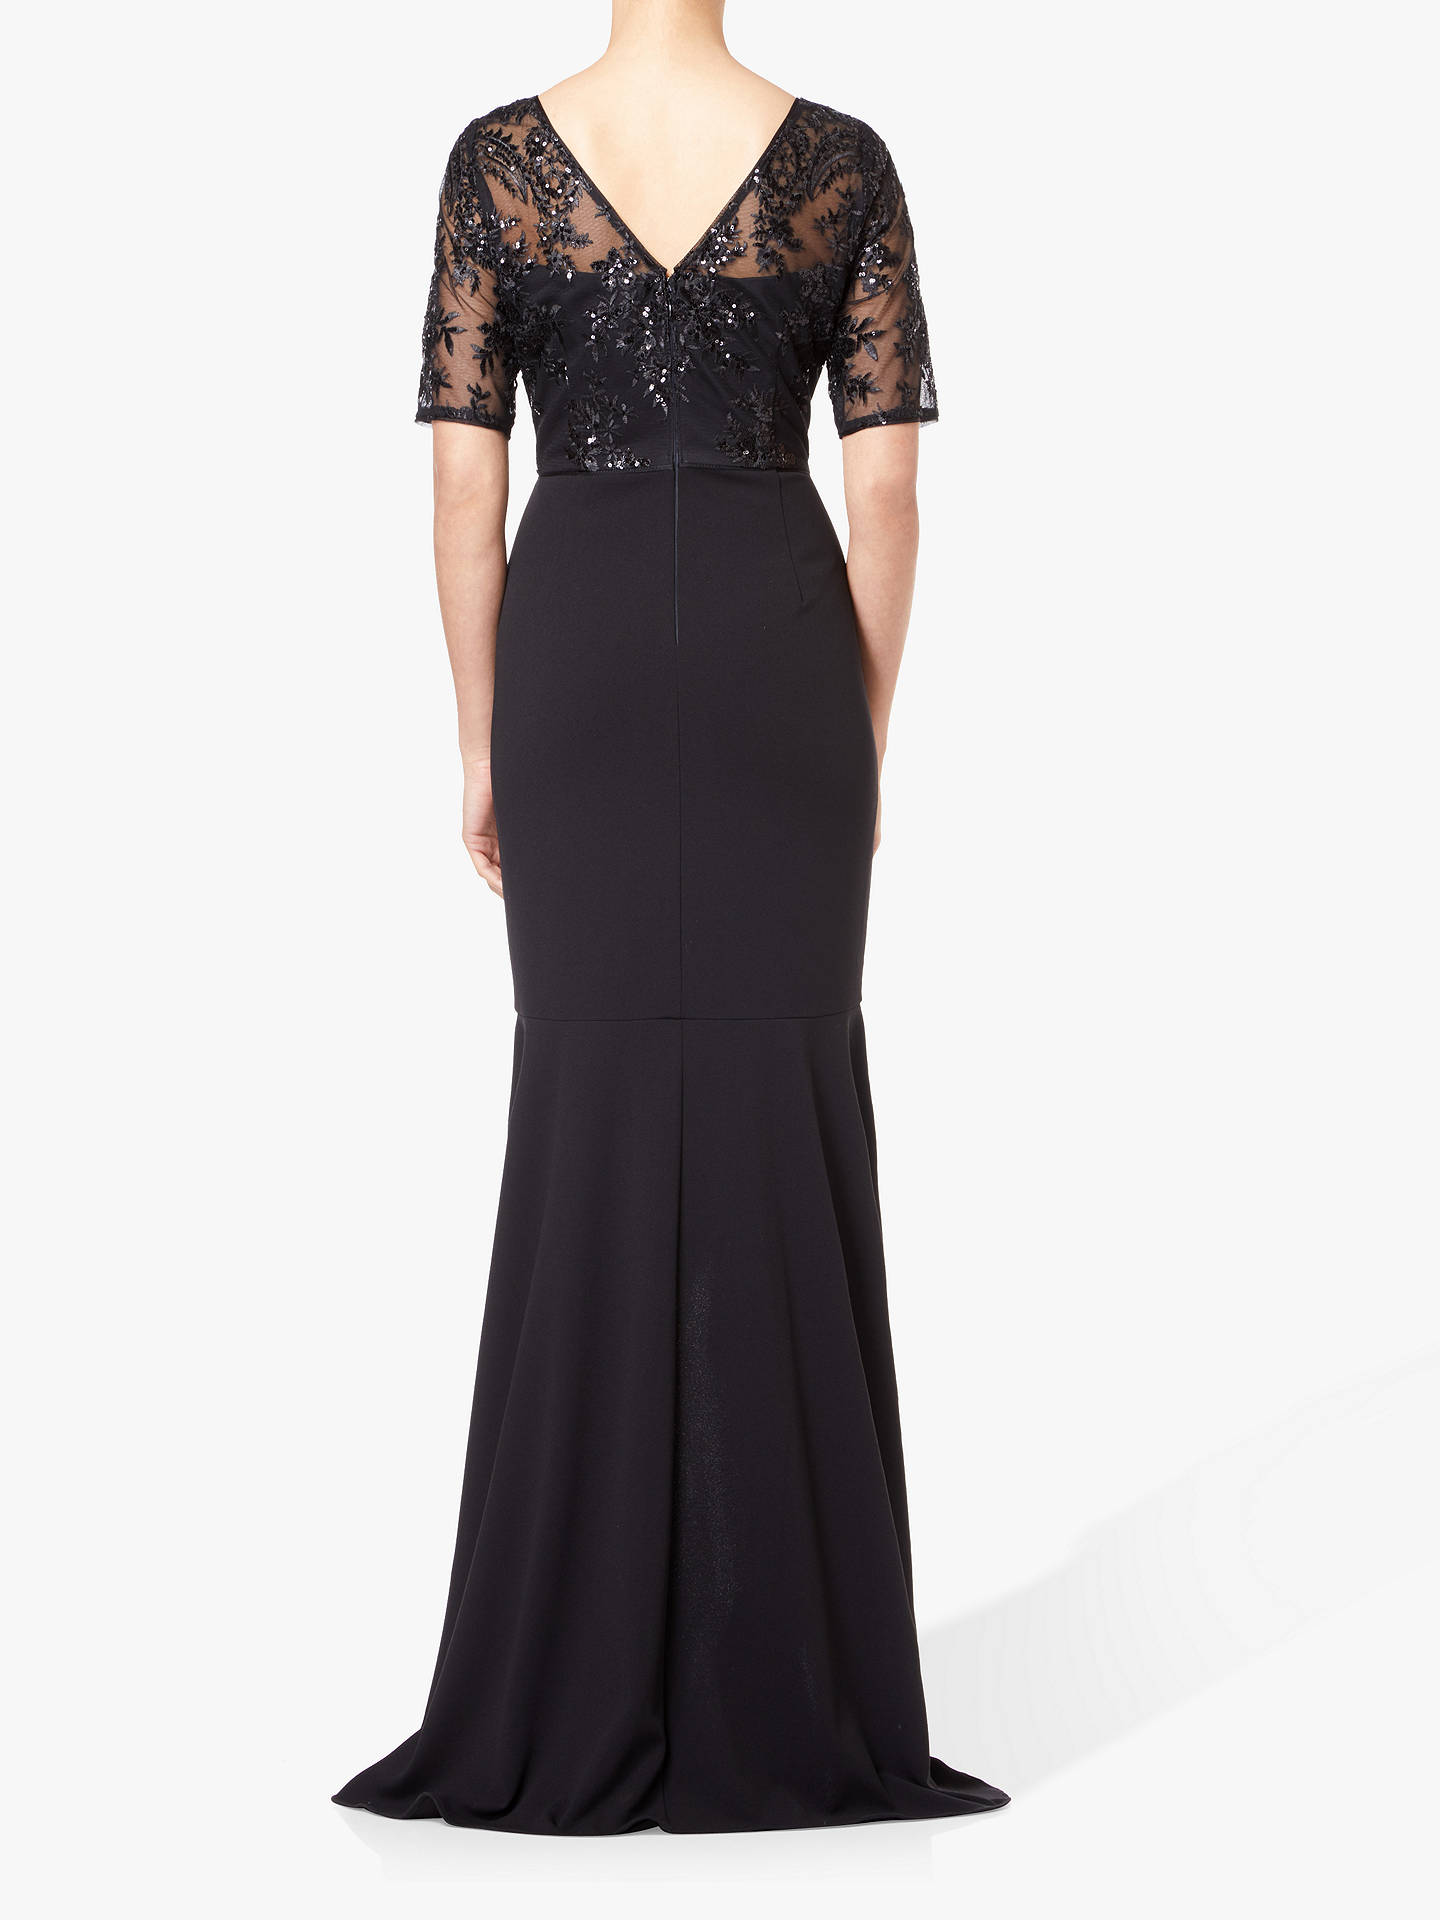 BuyAdrianna Papell Petite Sequin Dress, Black, 6 Online at johnlewis.com